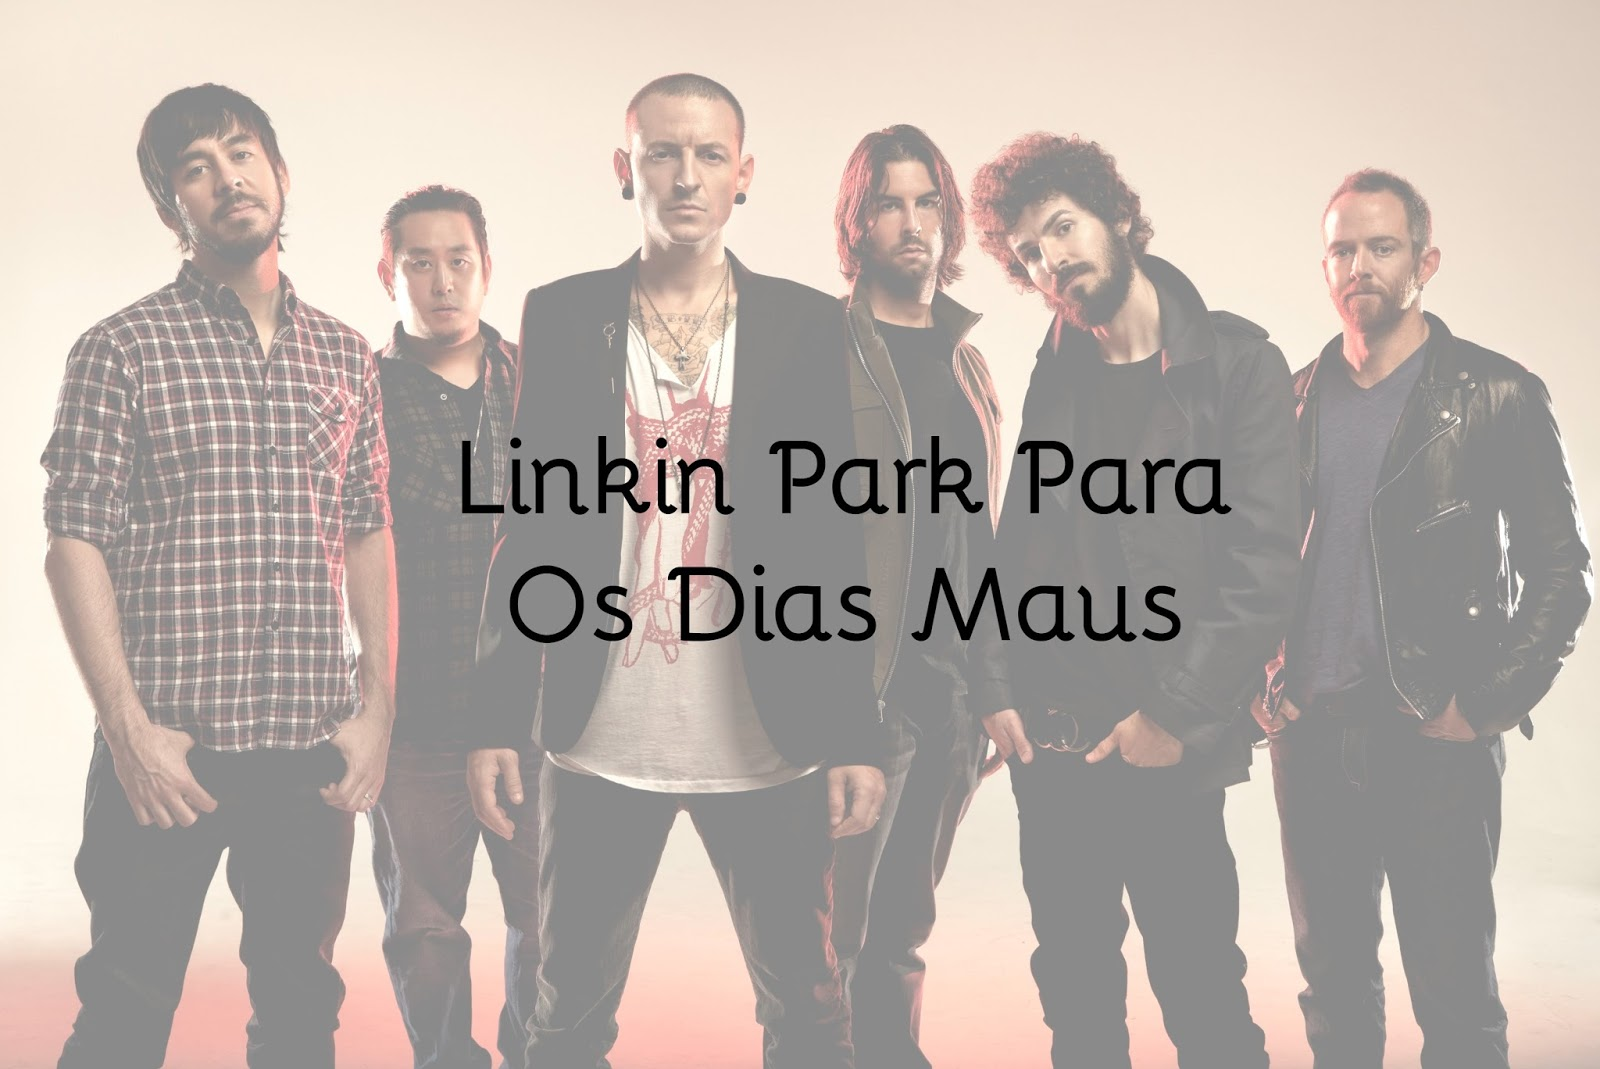 Linkin Park para os dias maus: it's that simple